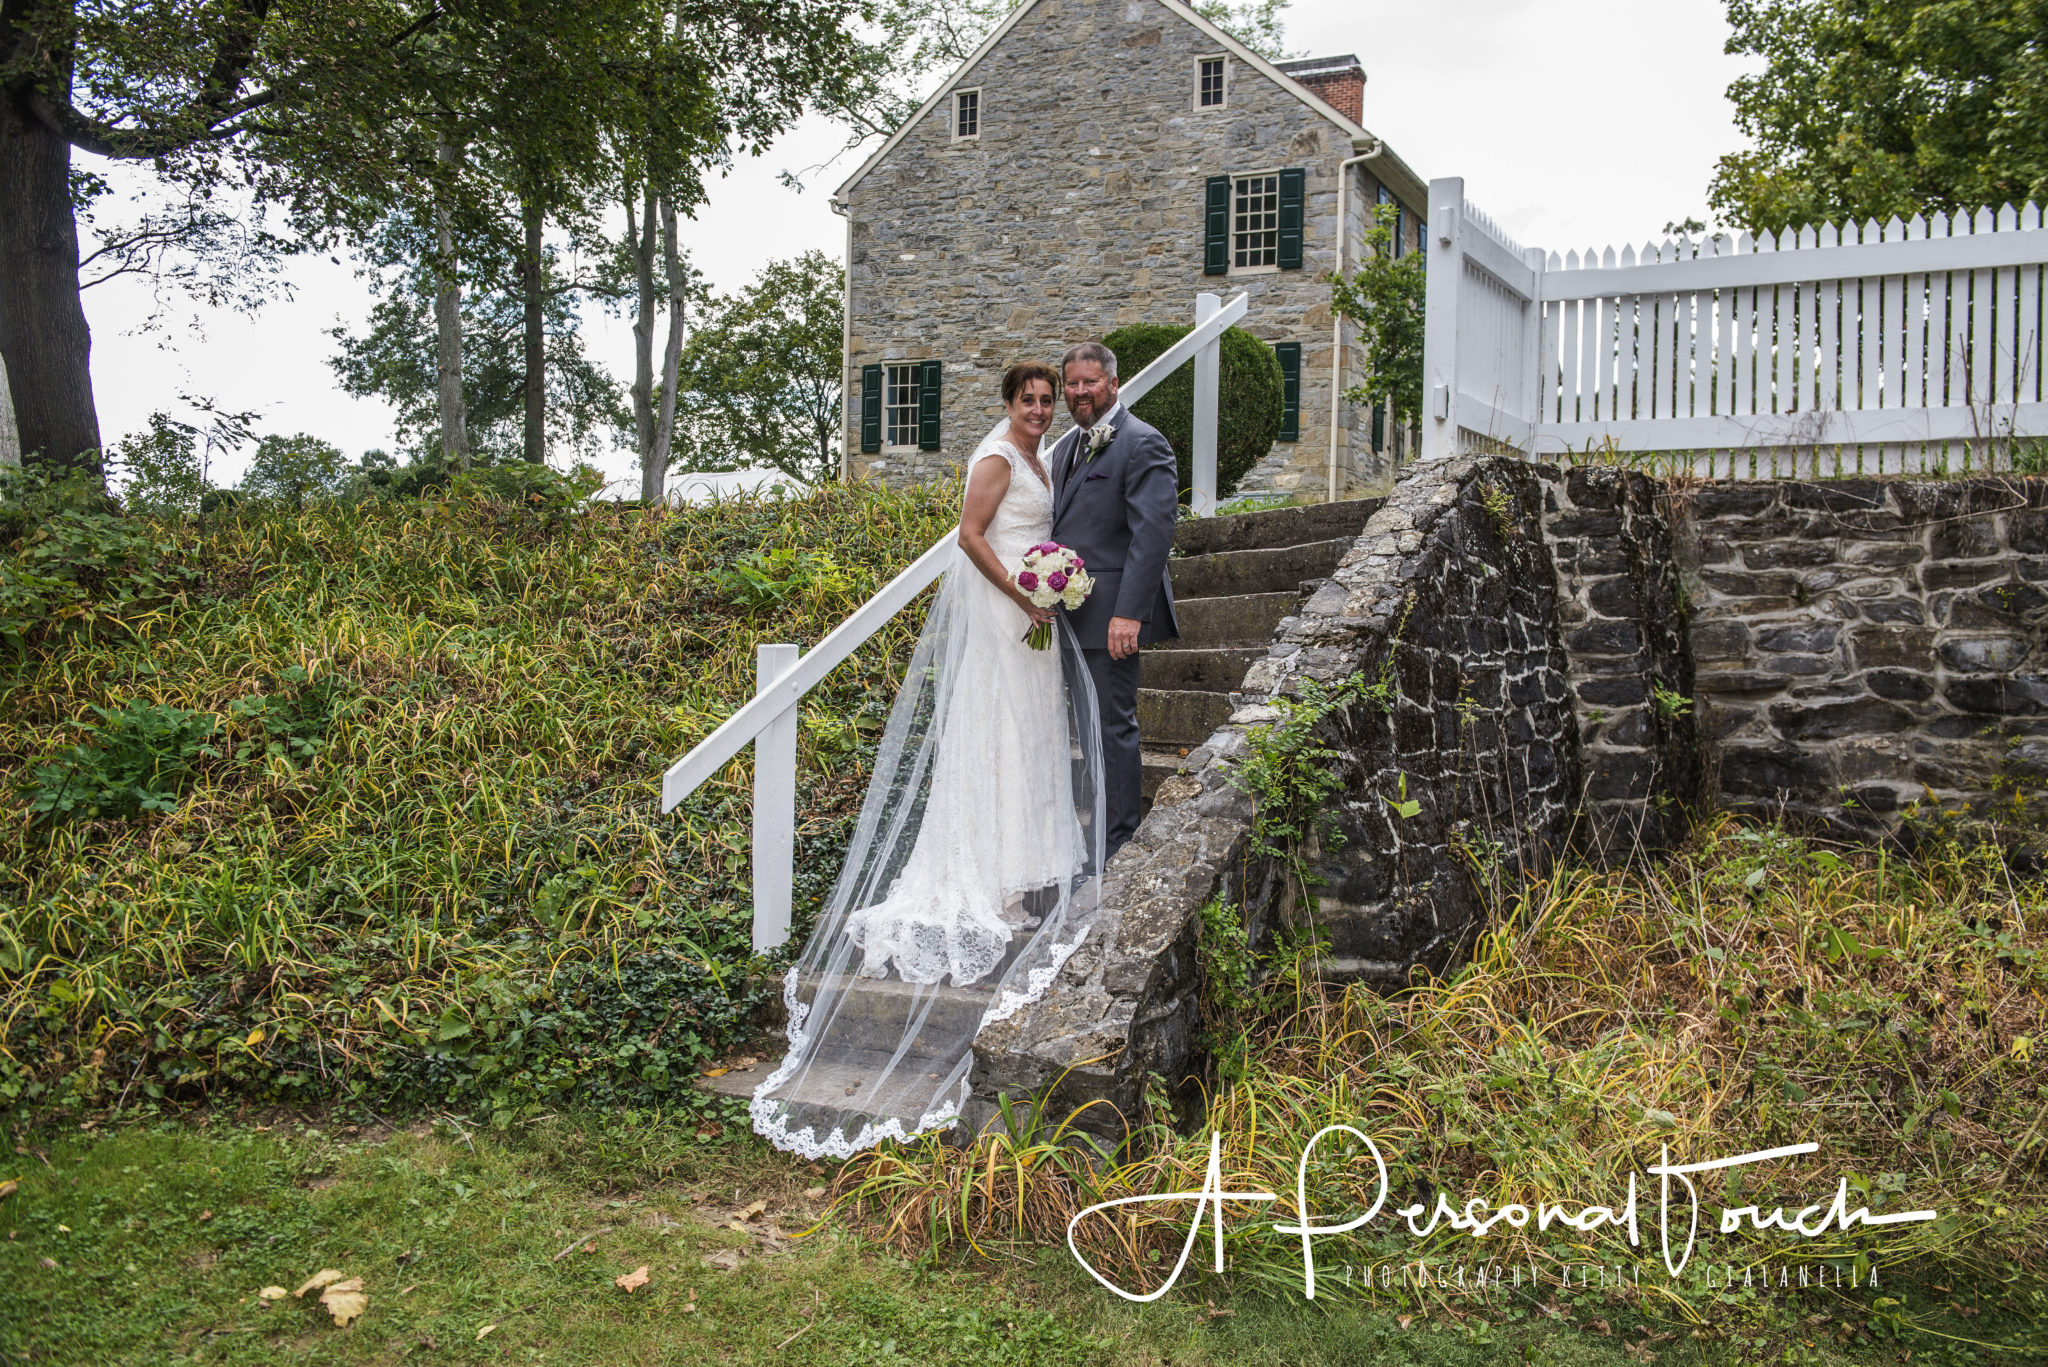 946c139fd2a A Day to Remember. The perfect location for your outdoor wedding.